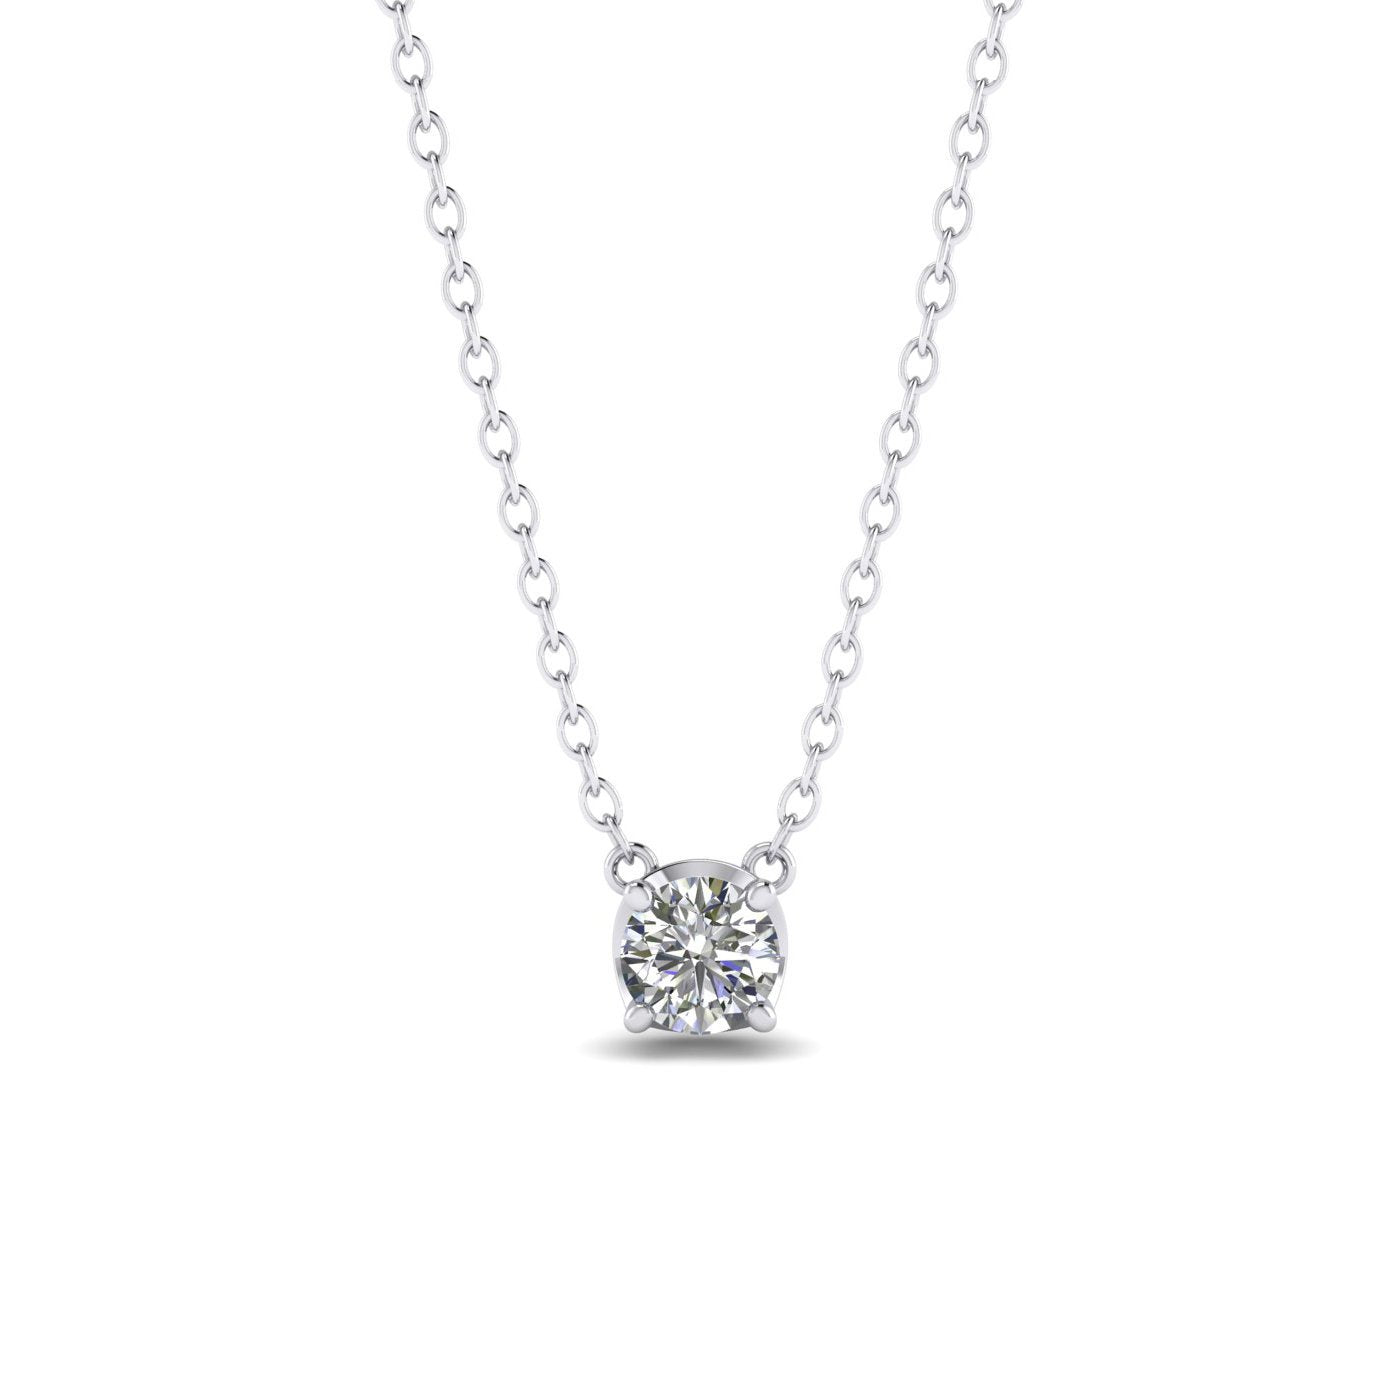 12 carat classic diamond pendant necklace shiree odiz pendants 12 carat classic diamond pendant necklace mozeypictures Image collections